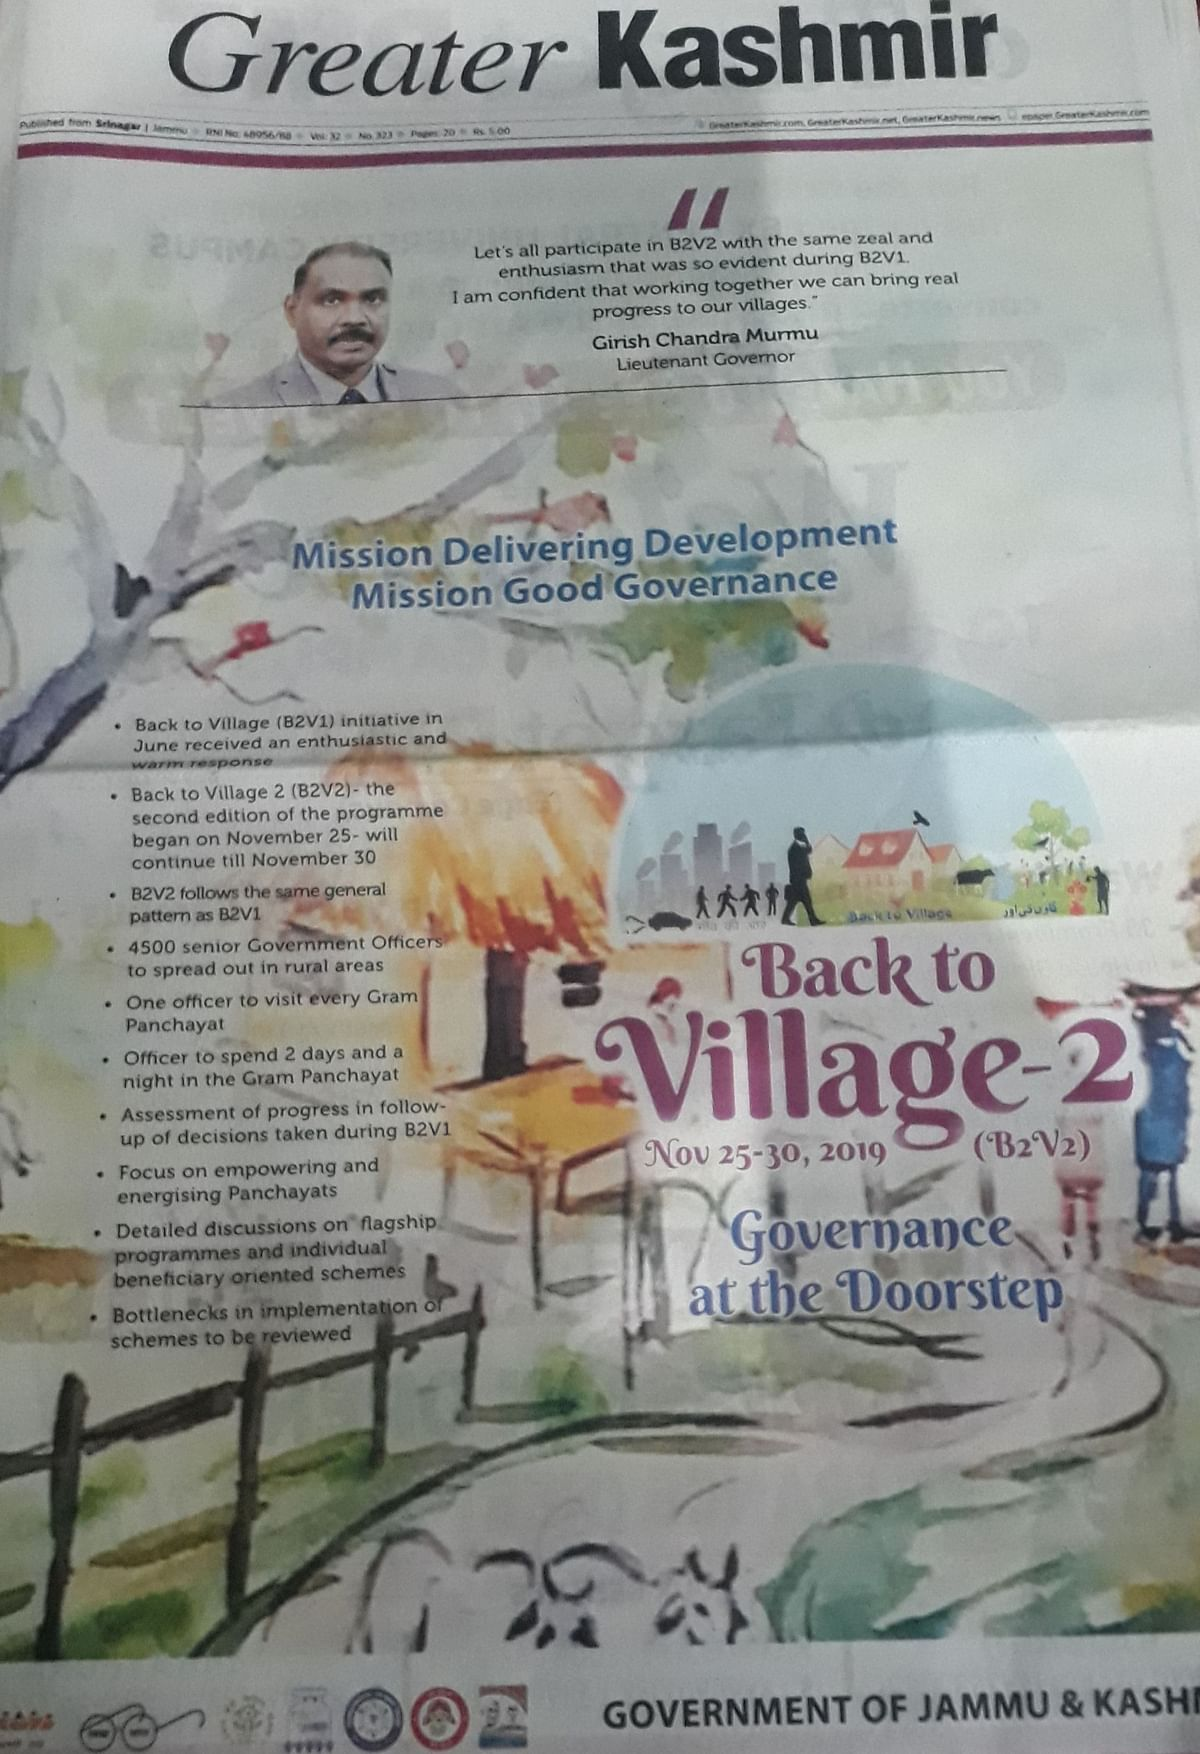 Second edition of J&K government's 'Back to Village' fails to impress the citizenry